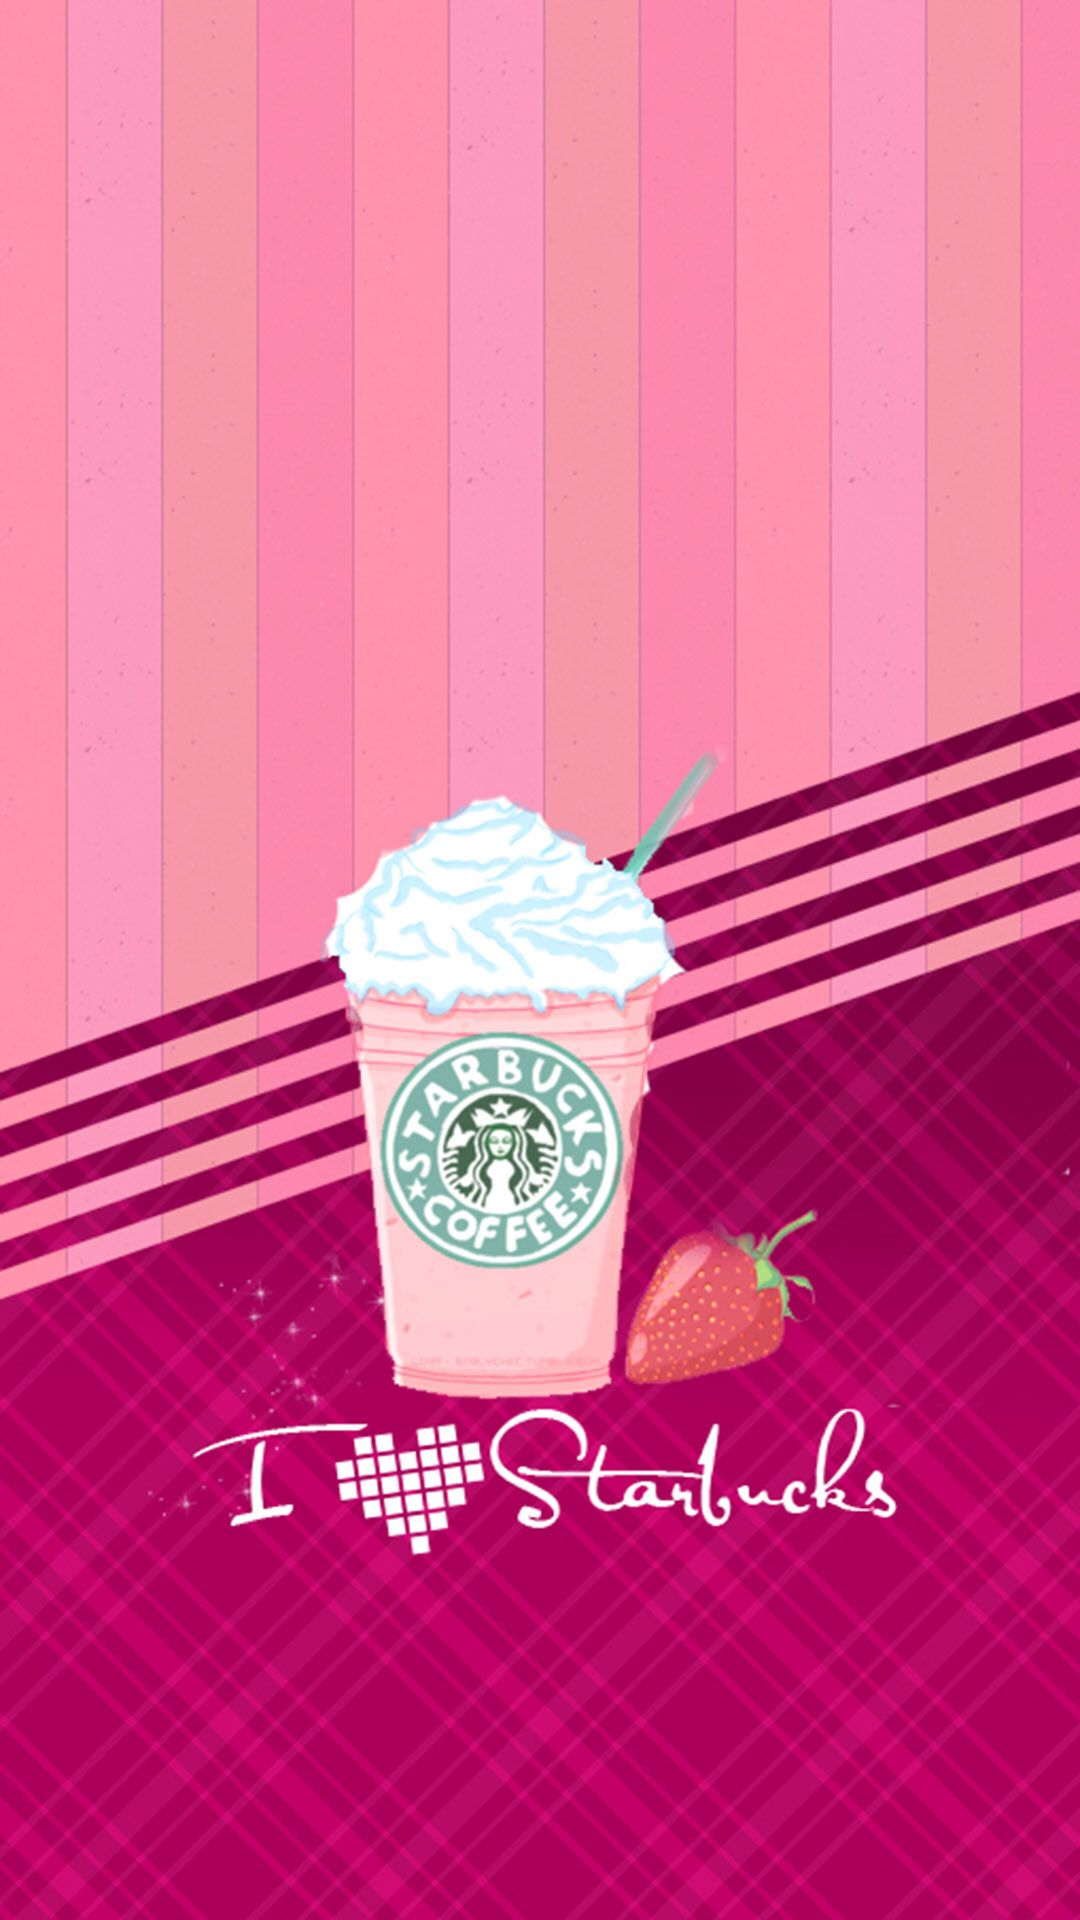 Downloaded From Girly Wallpapers Http Itunes Apple Com App Id1108375300 Thousands Of Hd Gi Iphone Wallpaper Girly Starbucks Wallpaper Wallpaper Iphone Cute